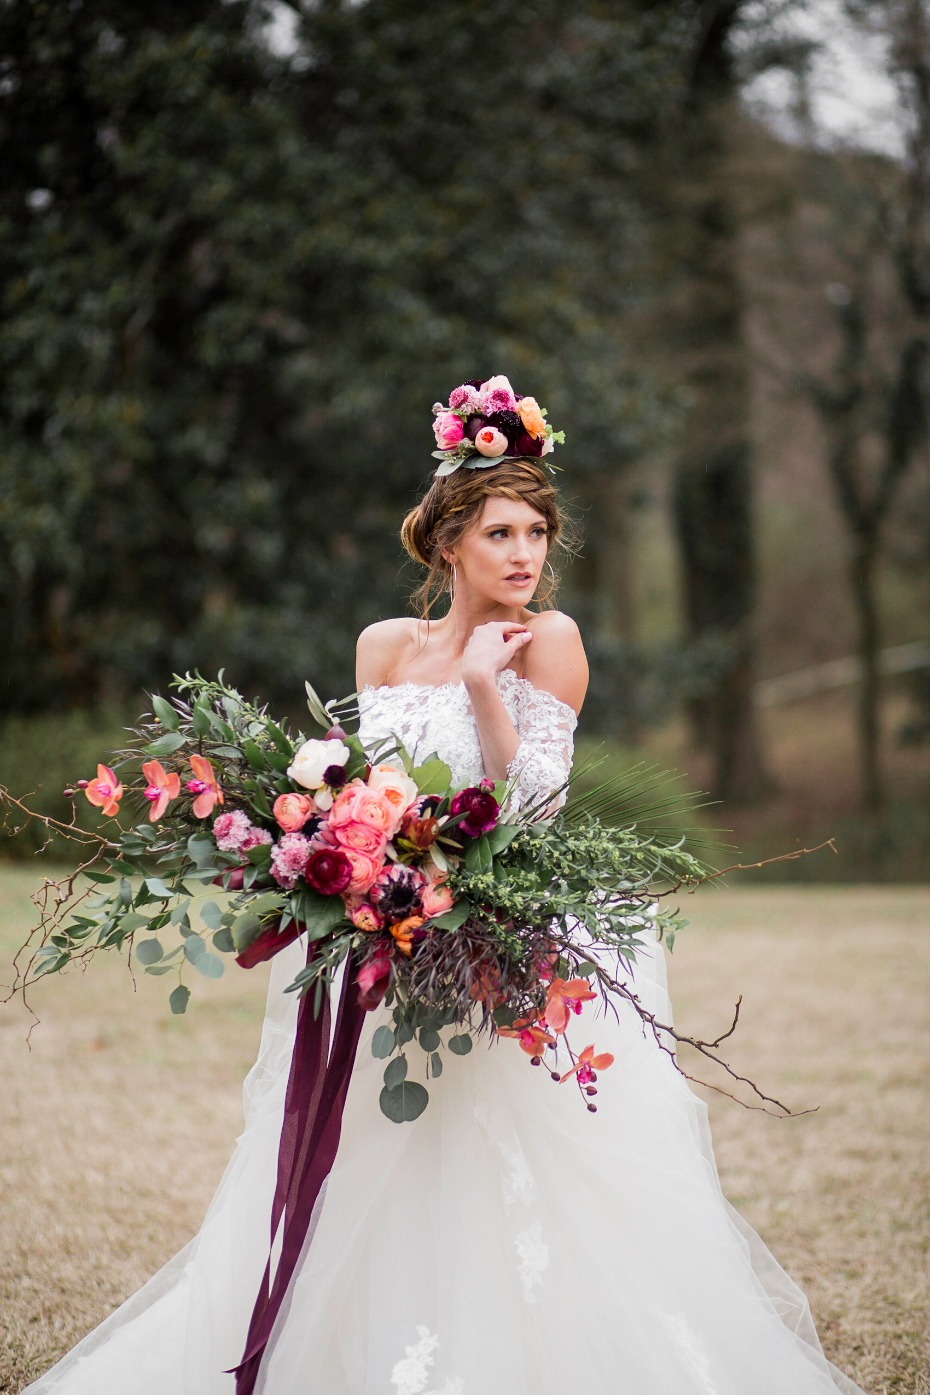 Gorgeous colorful bouquet and hairpiece